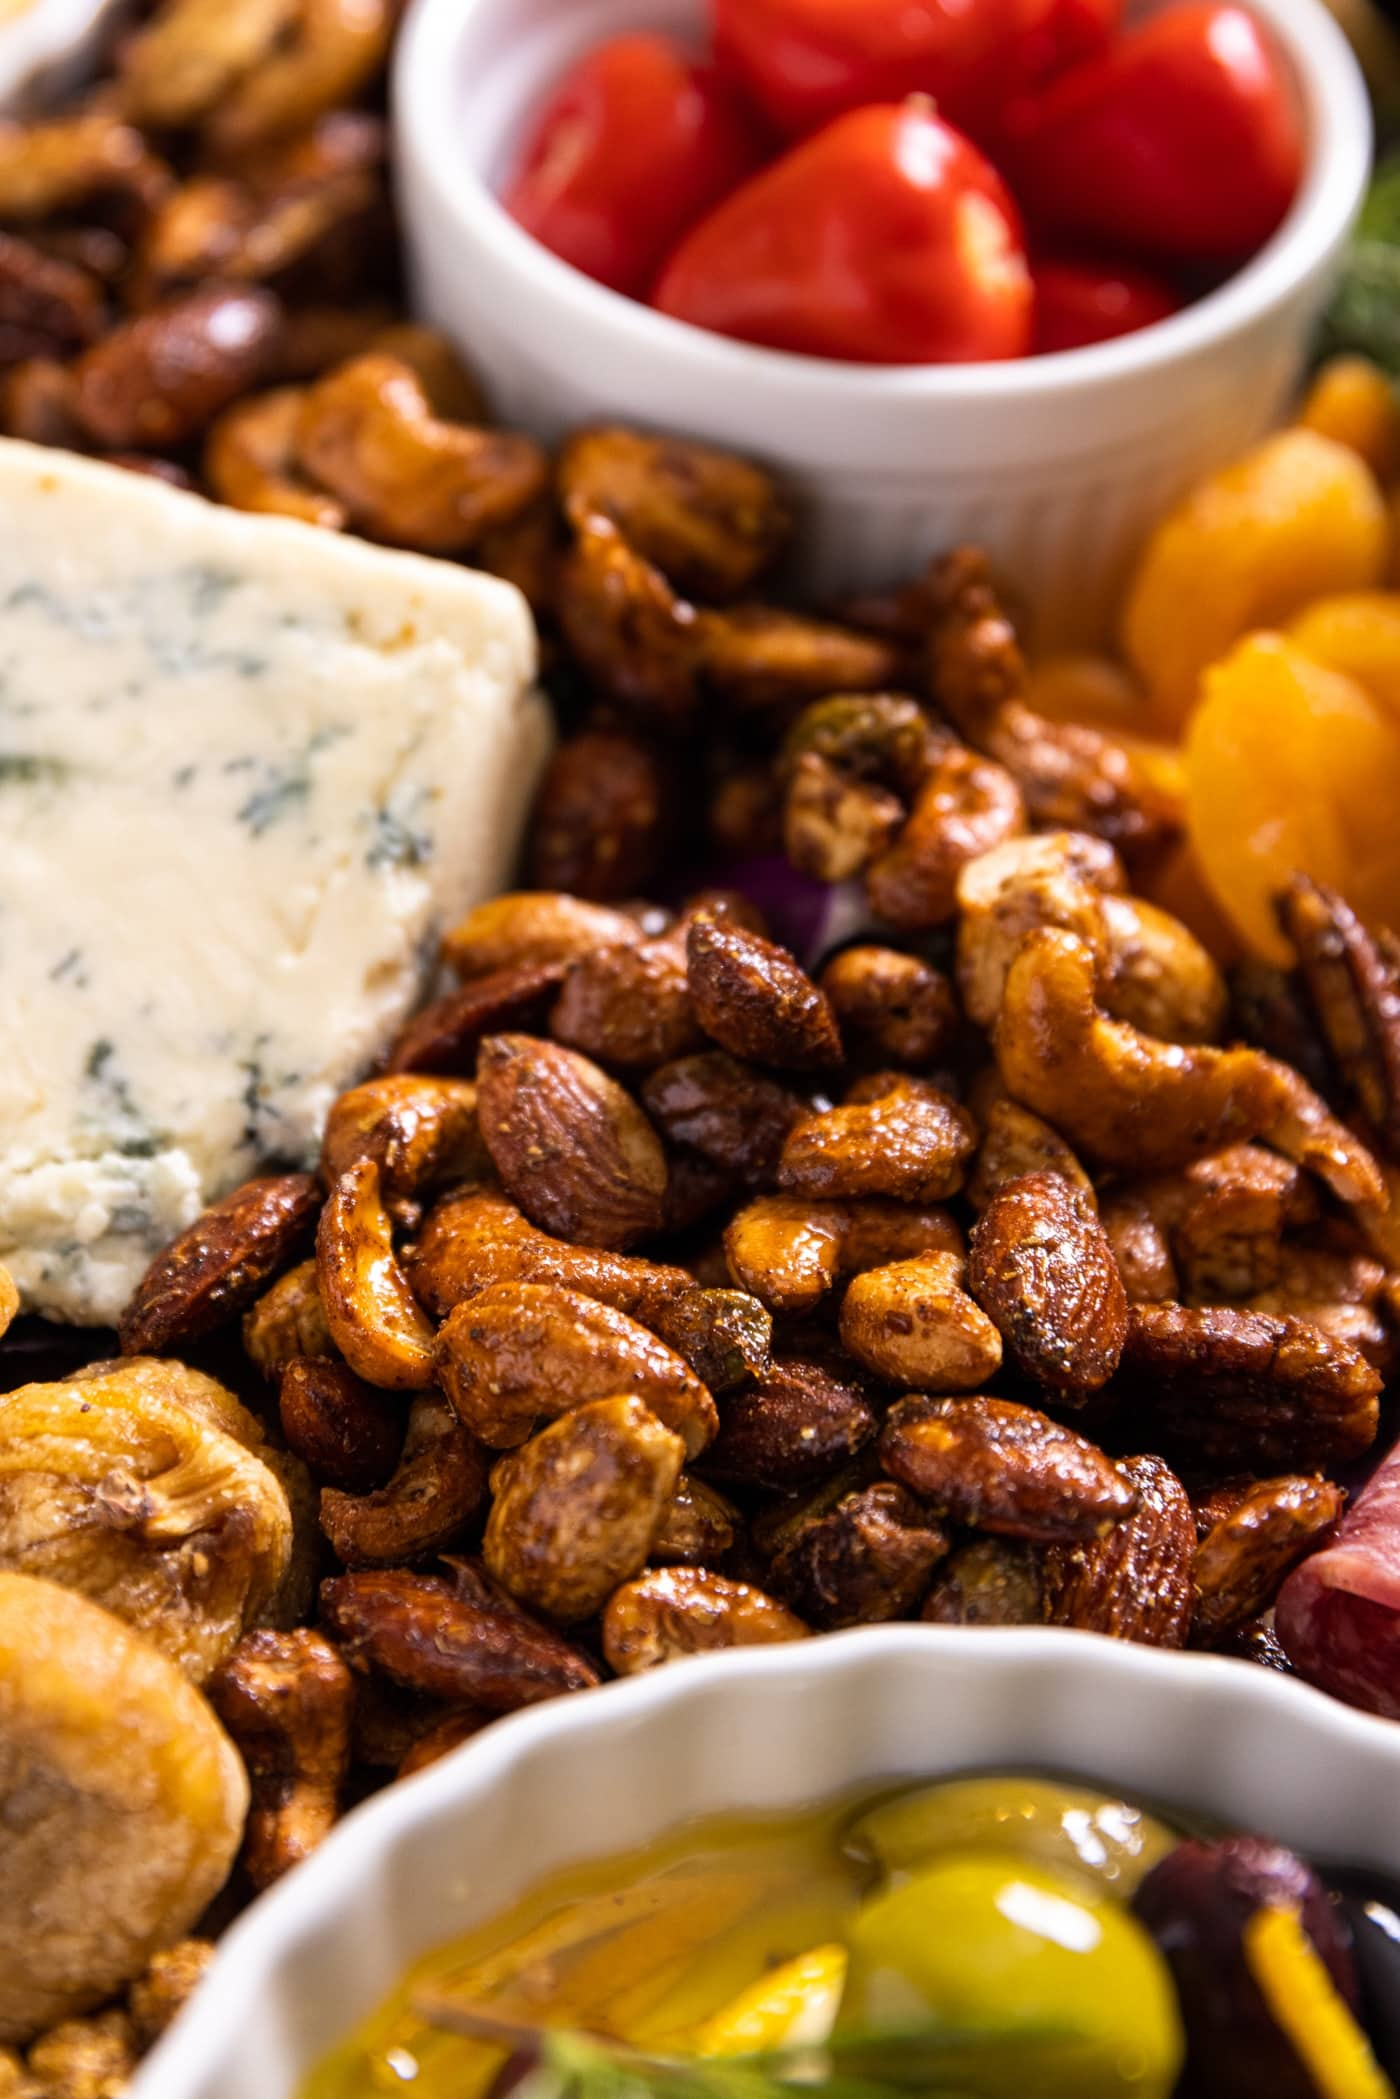 Close up view of spiced nut mix sitting on charcuterie board amongst red stuffed peppers, olives, dried fruit, and blue cheese